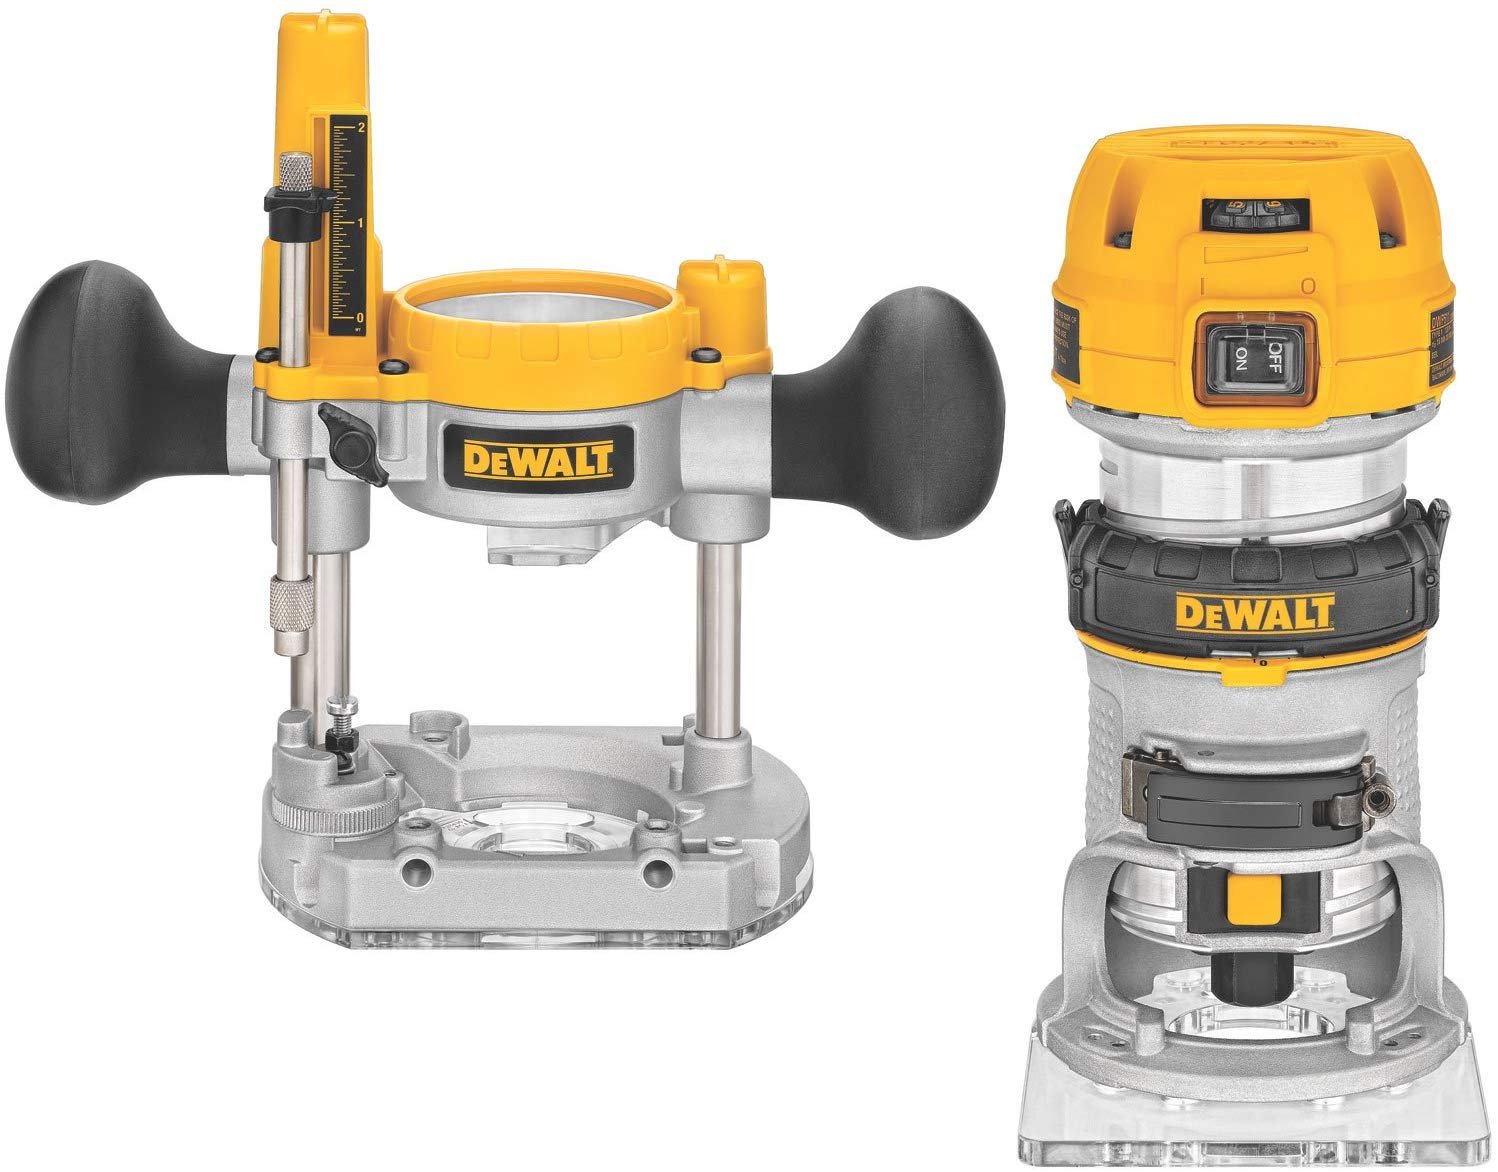 10 Best Wood Router Under 200 Top Picks Of 2020